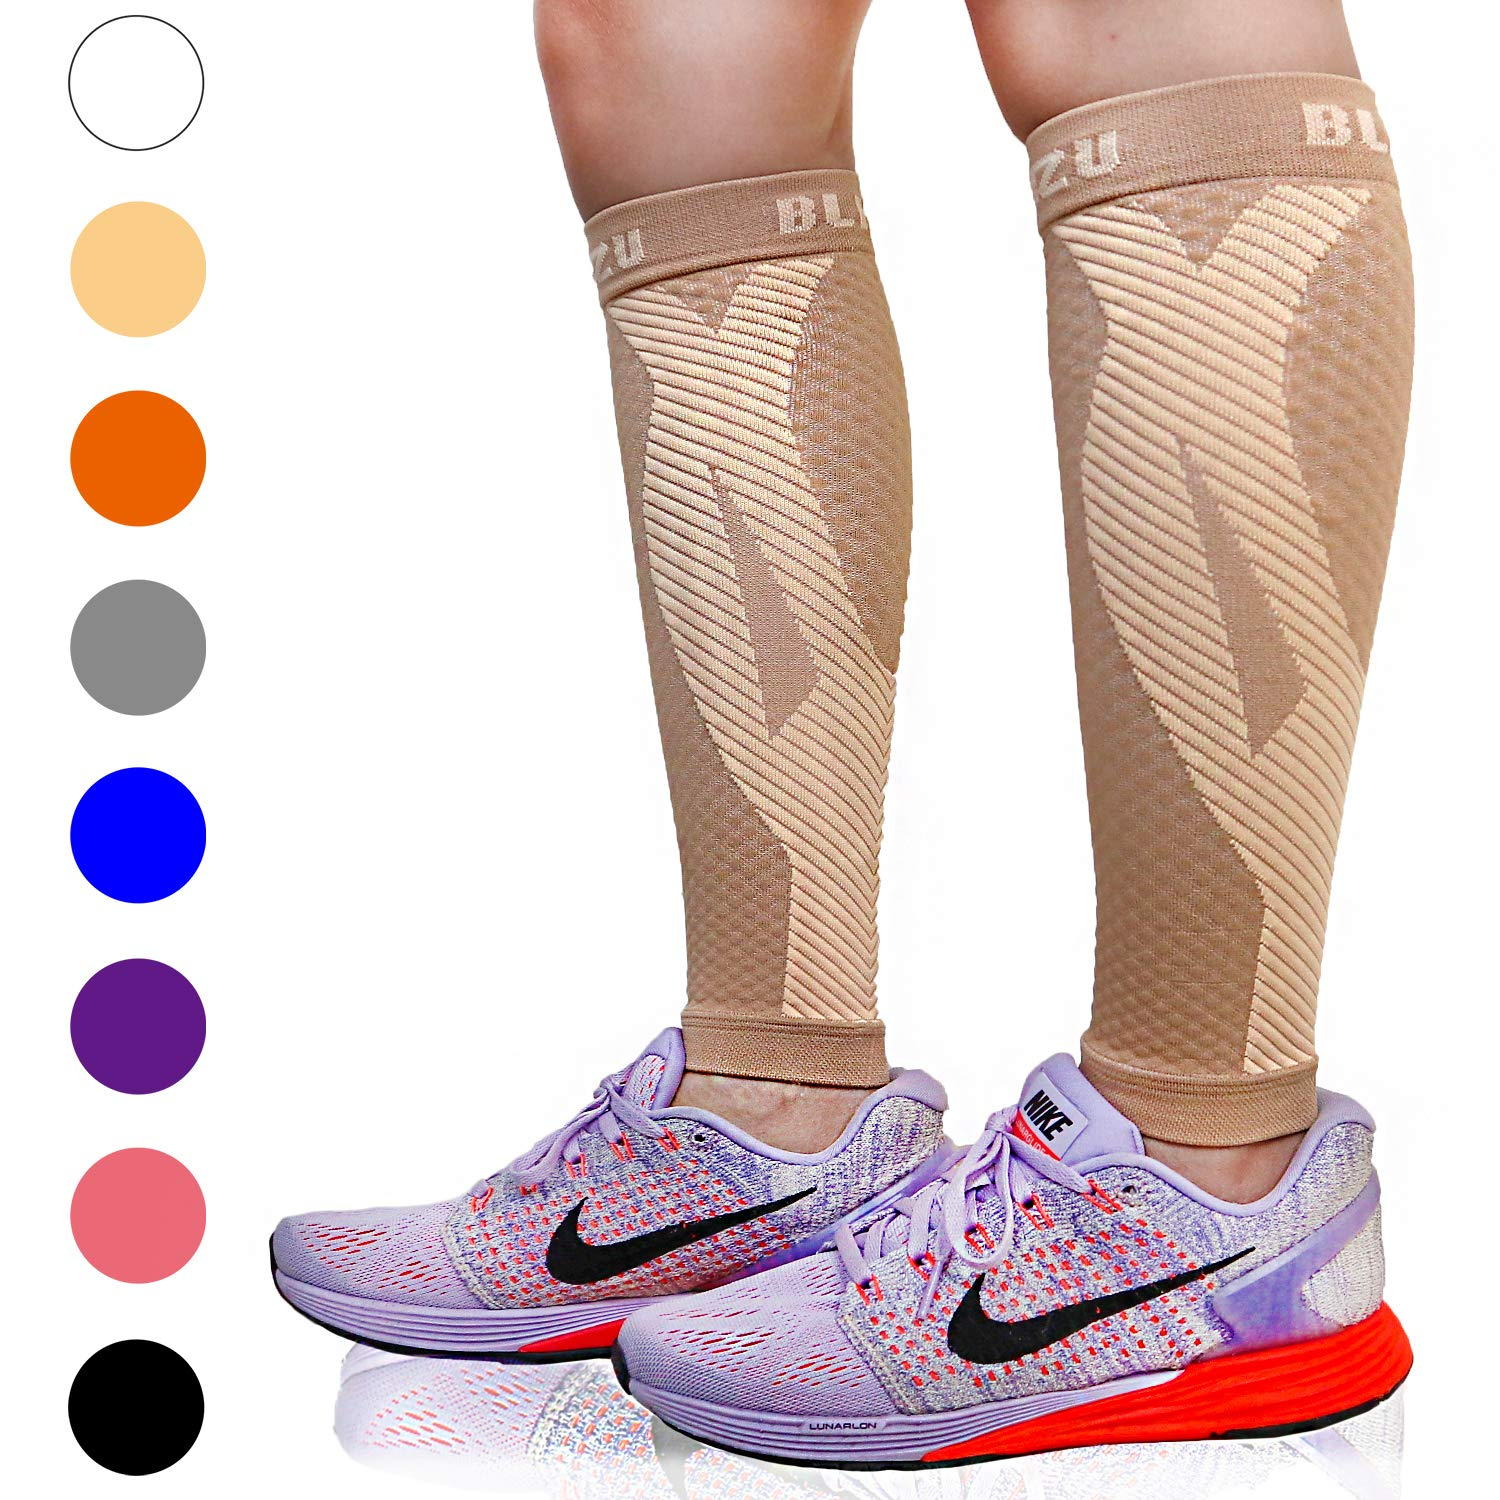 BLITZU Calf Compression Sleeve Leg Performance Support for Shin Splint & Calf Pain Relief. Men Women Runners Guards Sleeves for Running. Improves Circulation and Recovery (Nude, Small/Medium)